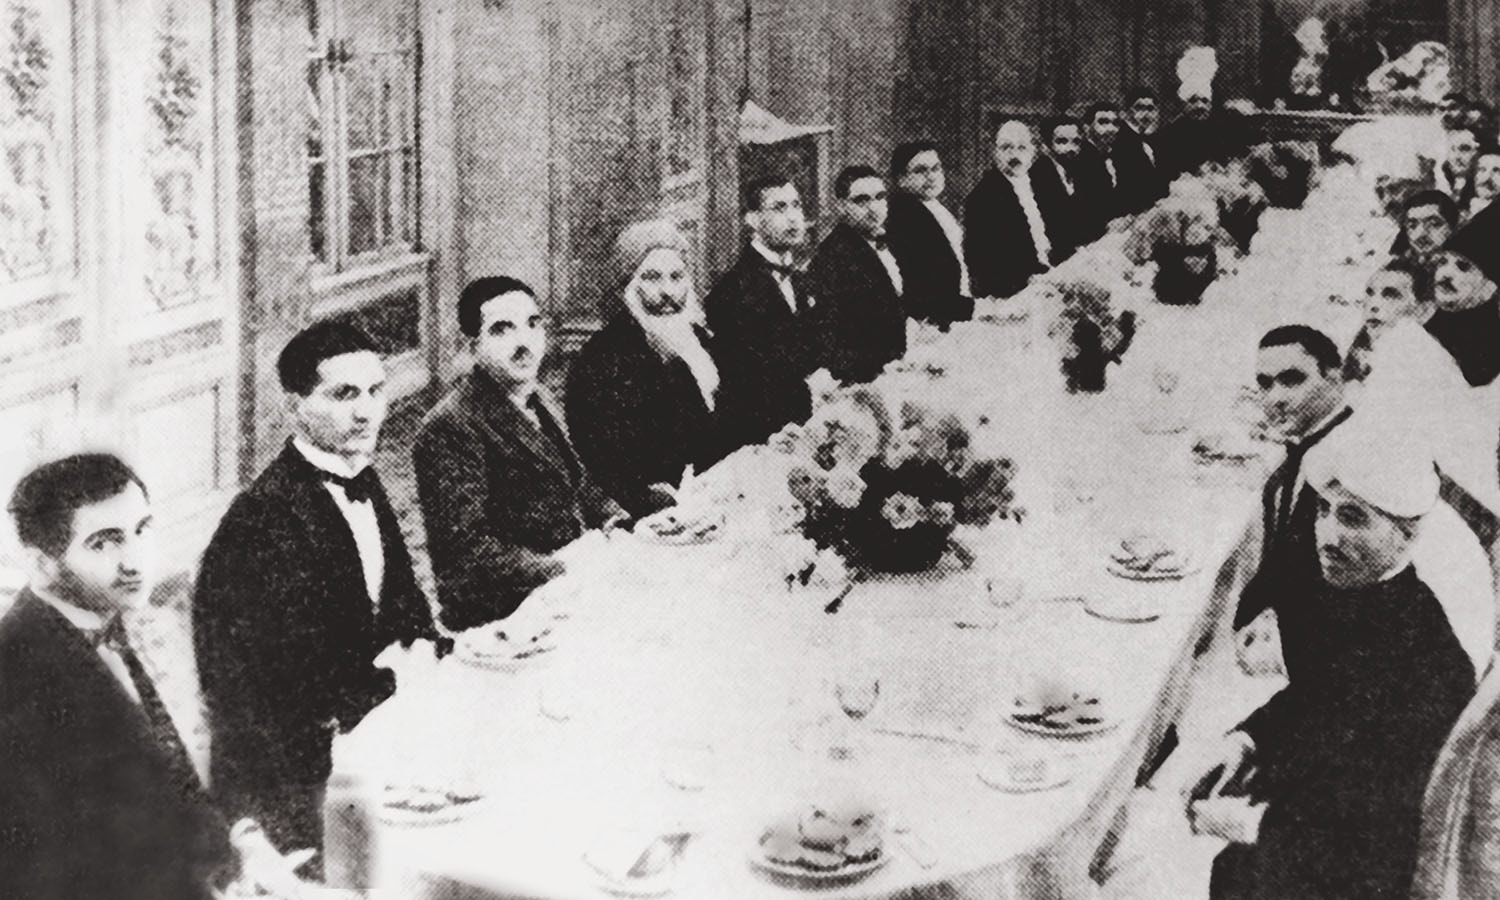 Allama Iqbal (centre; right in his characteristic headgear) sitting alongside Quaid-i-Azam Mohammad Ali Jinnah at the Round Table Conference in London (above). | Photo: The Allama Iqbal Collection